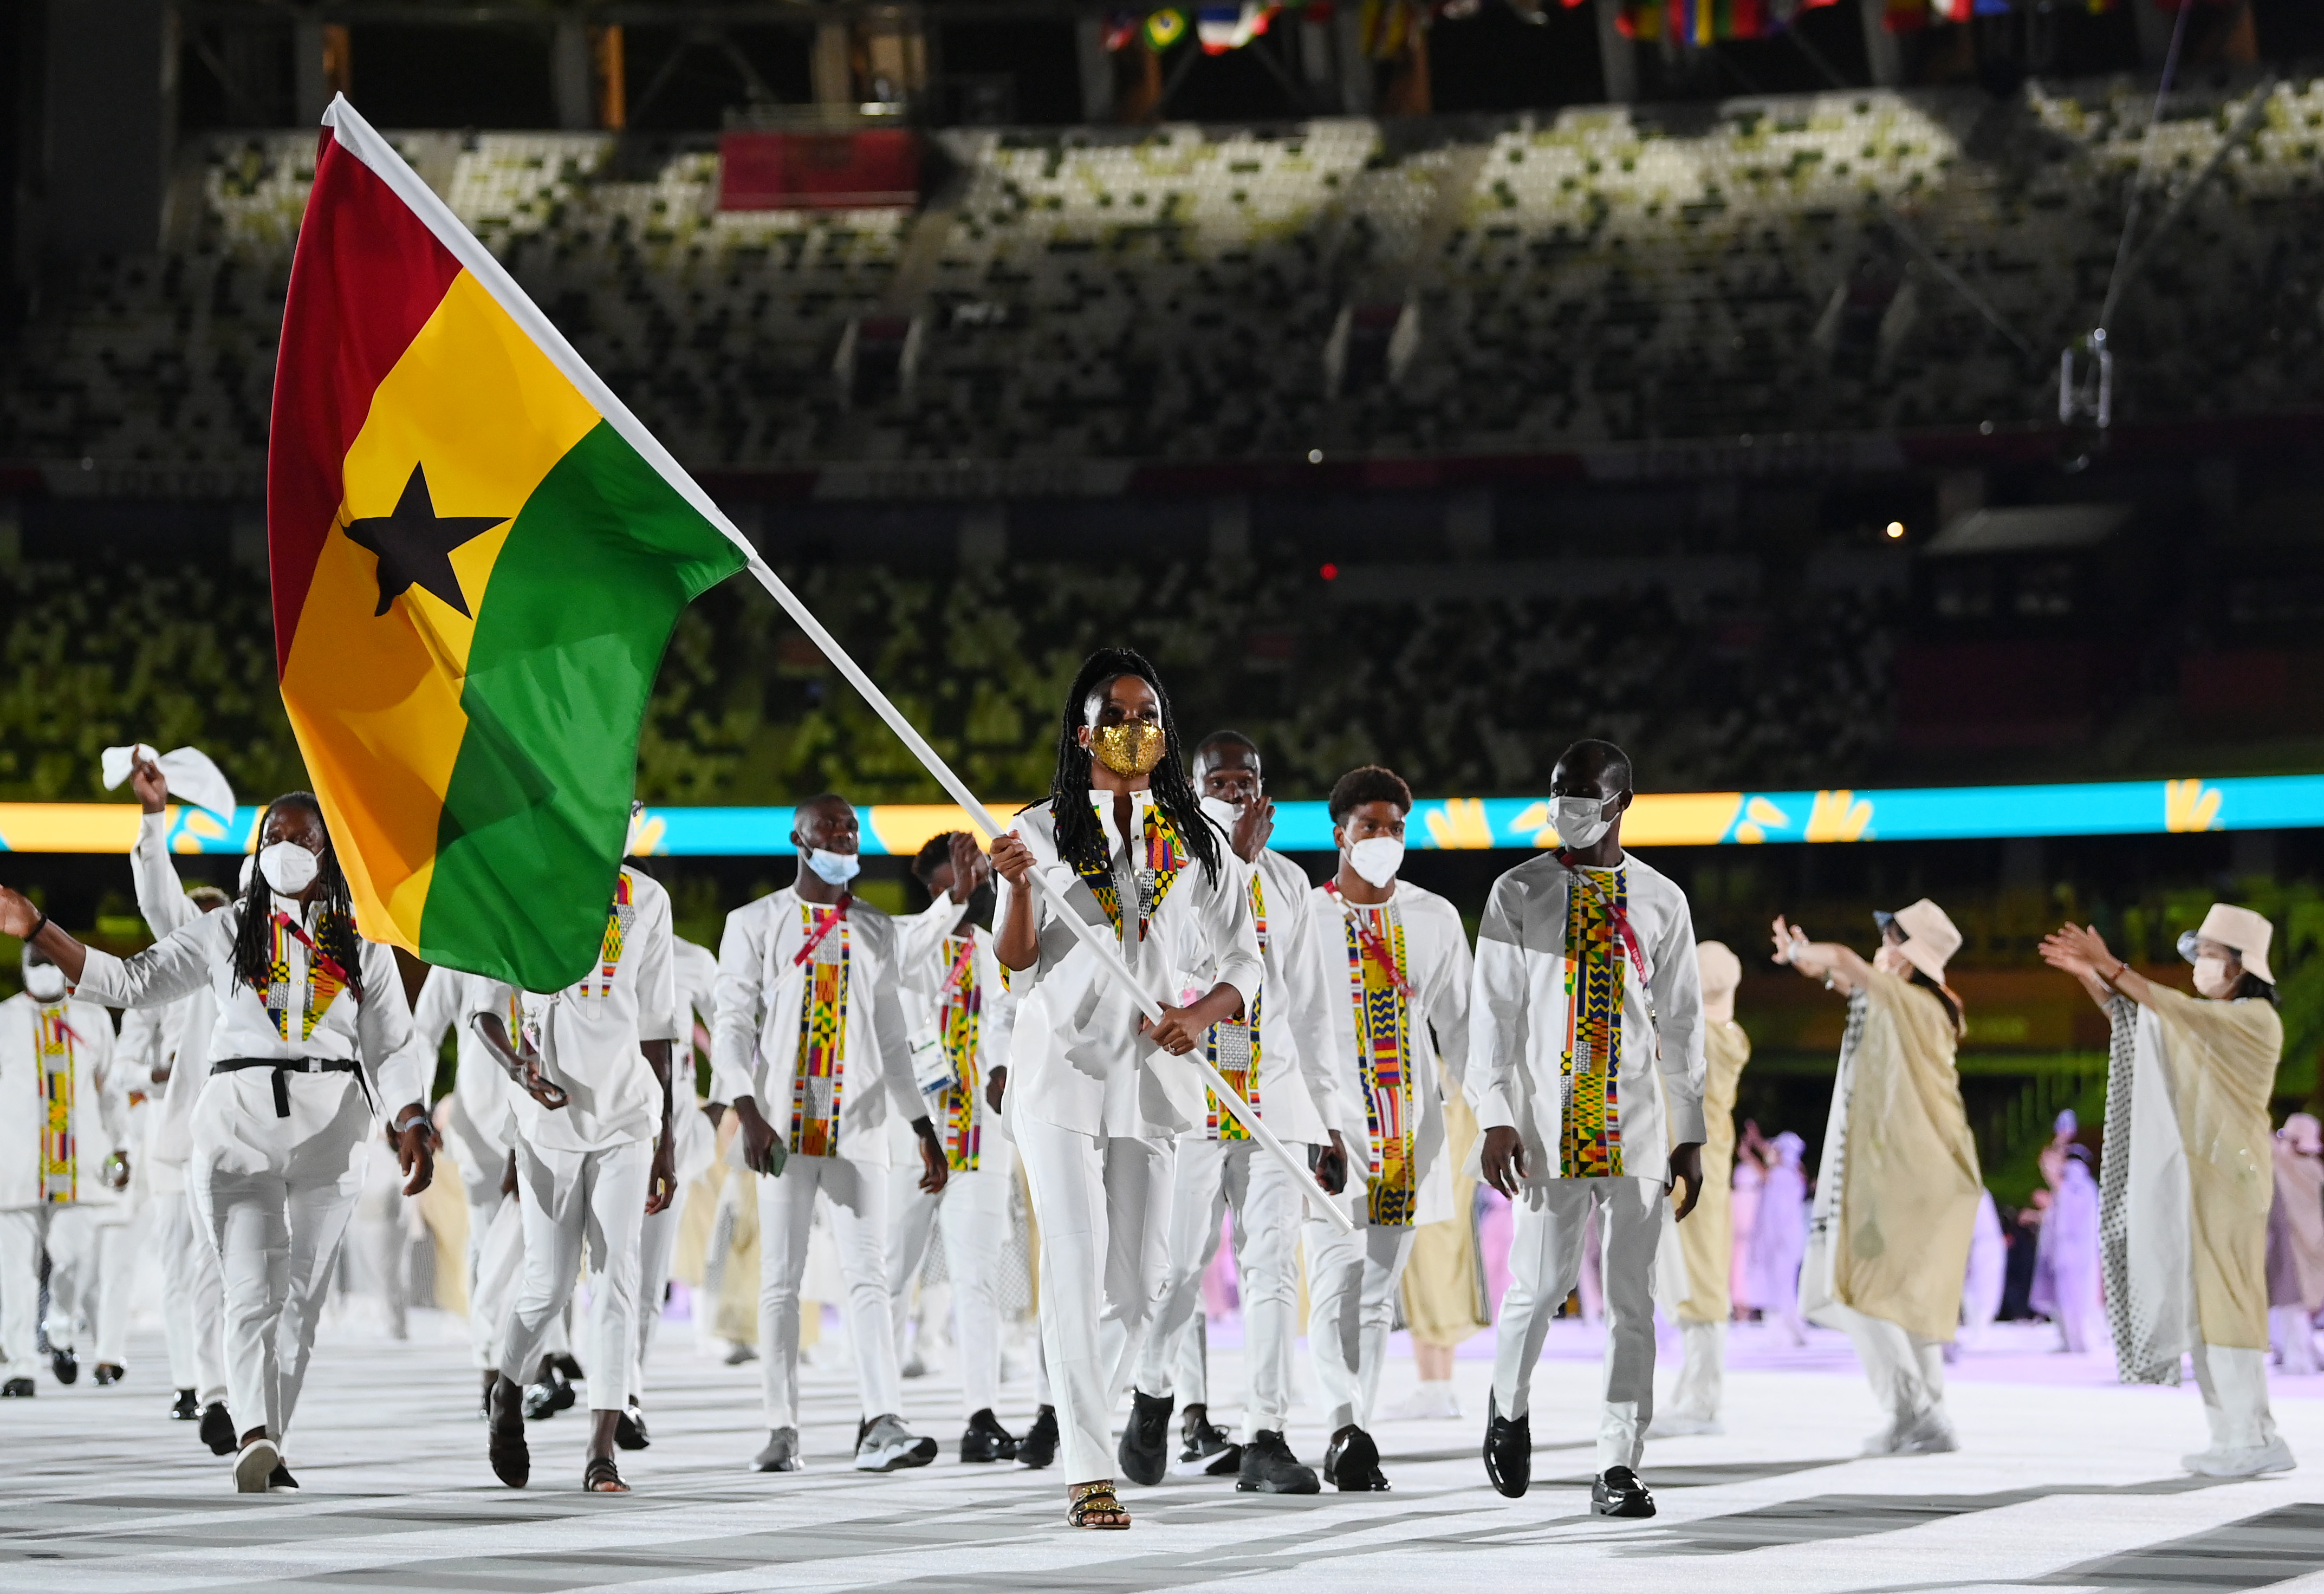 Flag bearers Nadia Eke and Sulemanu Tetteh of Team Ghana during the Opening Ceremony of the Tokyo 2020 Olympic Games